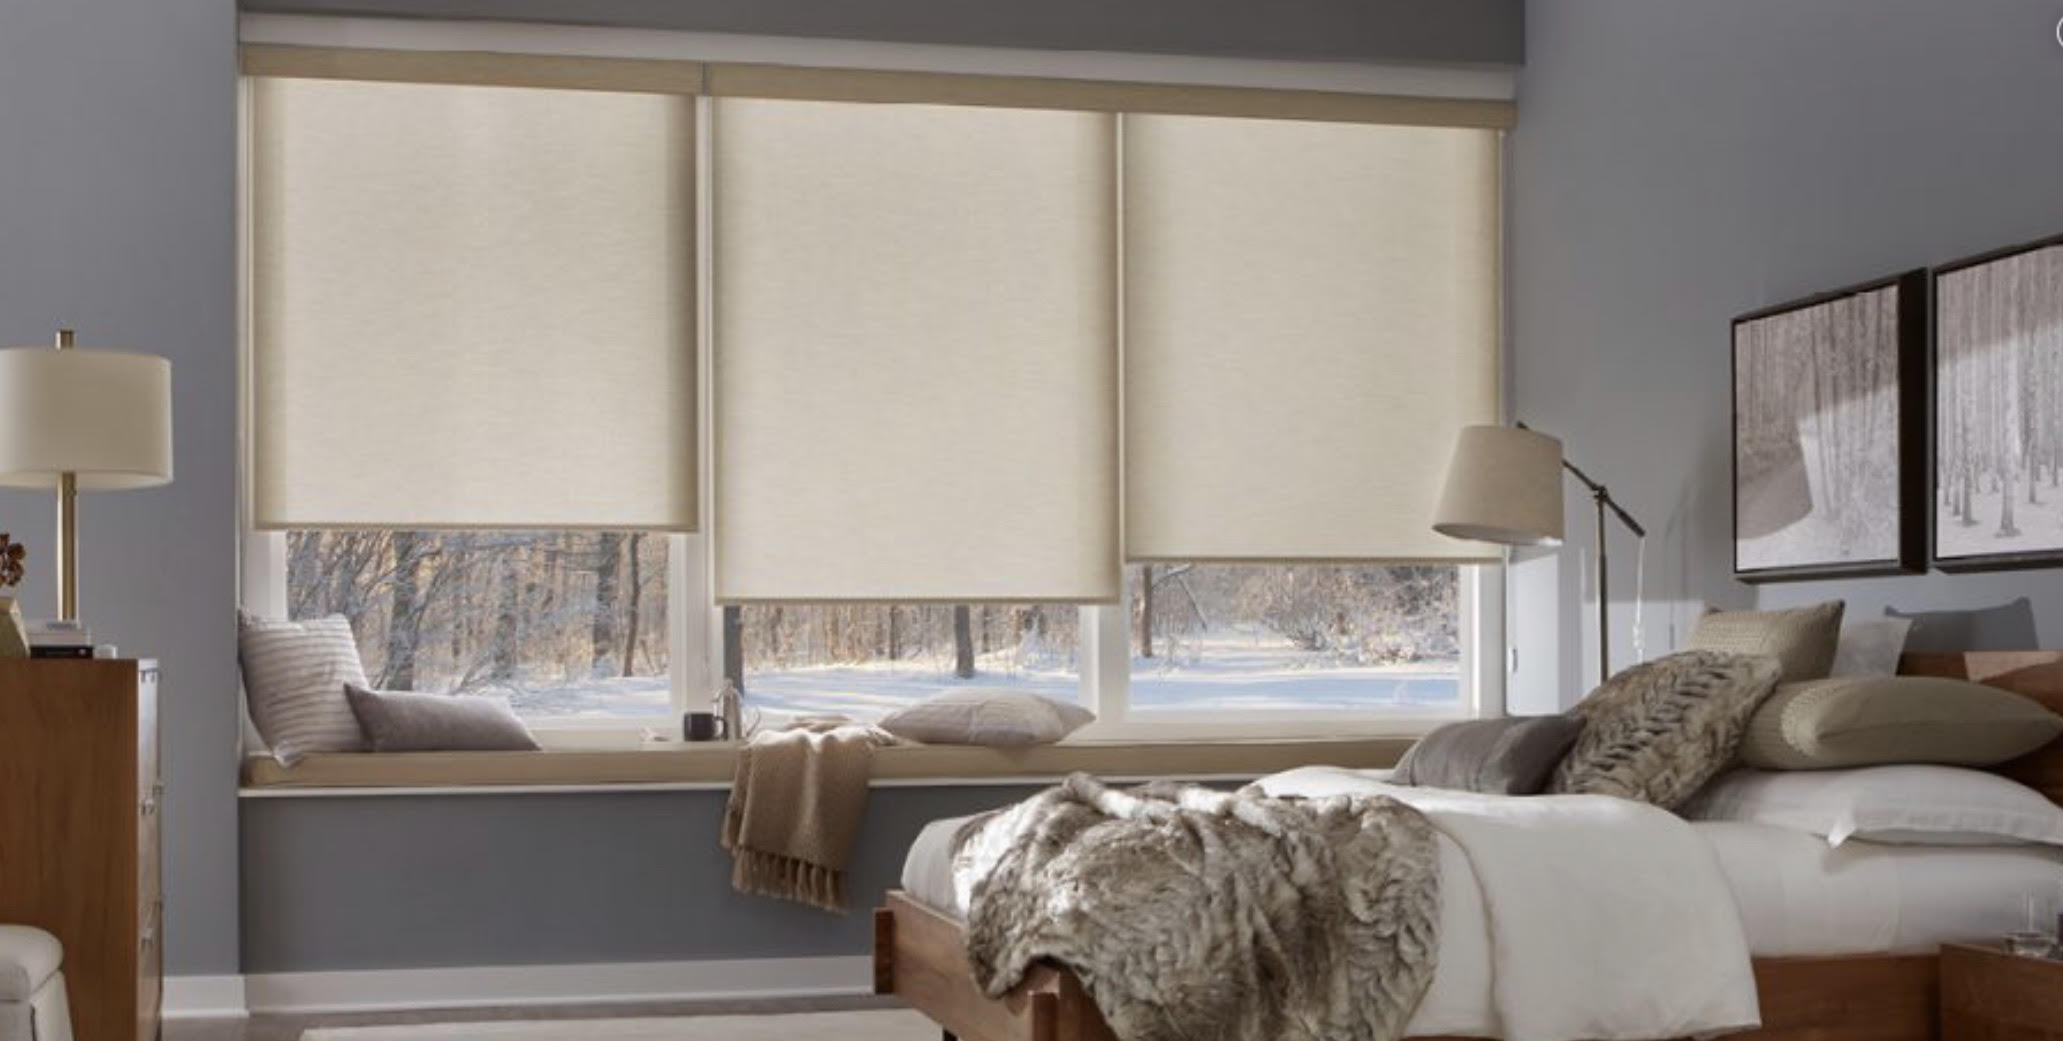 Side By Side Roller Shades - 100% Privacy